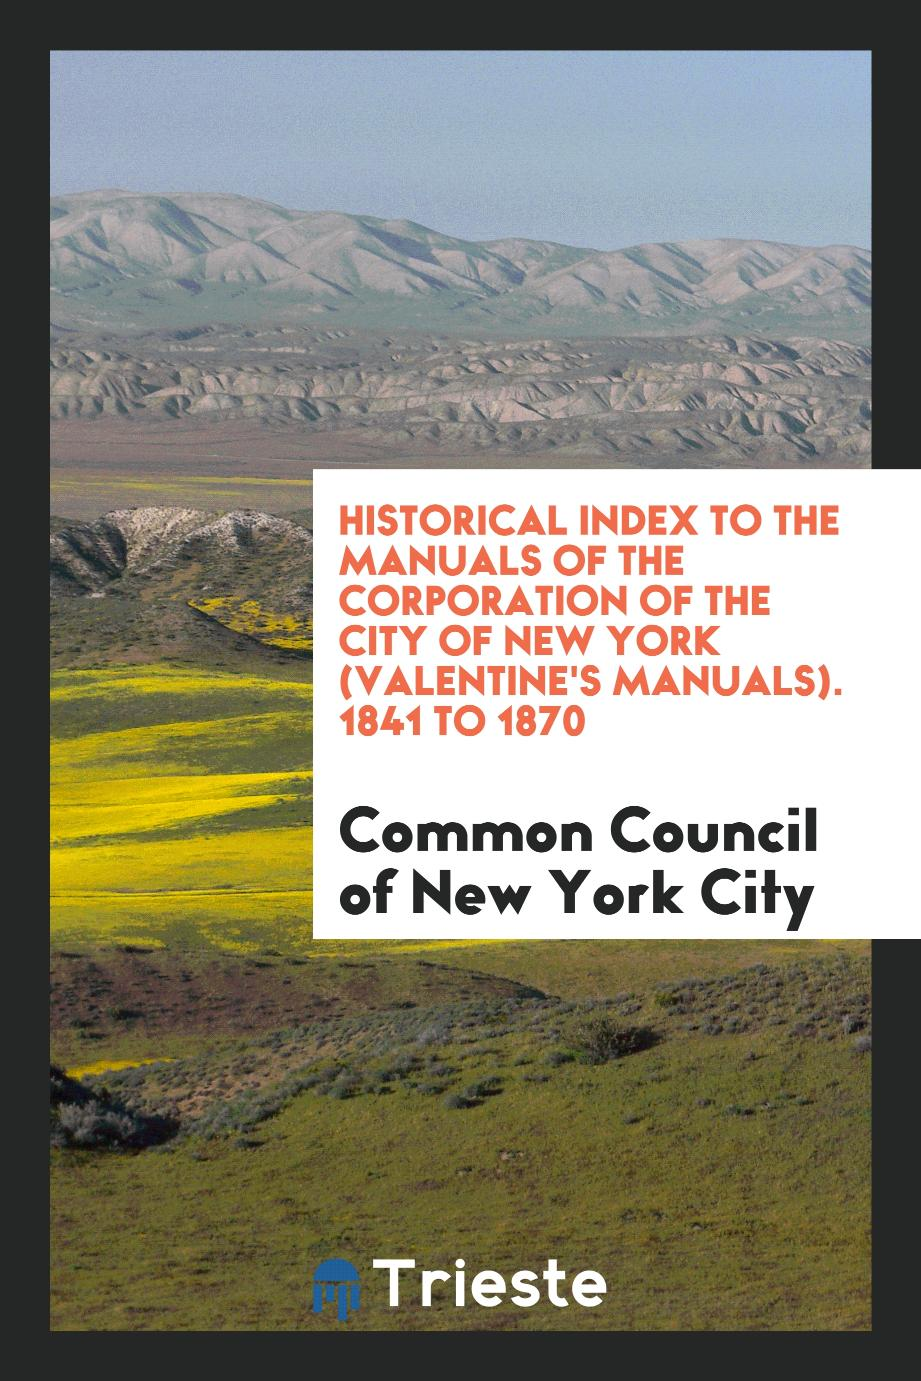 Historical Index to the Manuals of the Corporation of the City of New York (Valentine's Manuals). 1841 to 1870